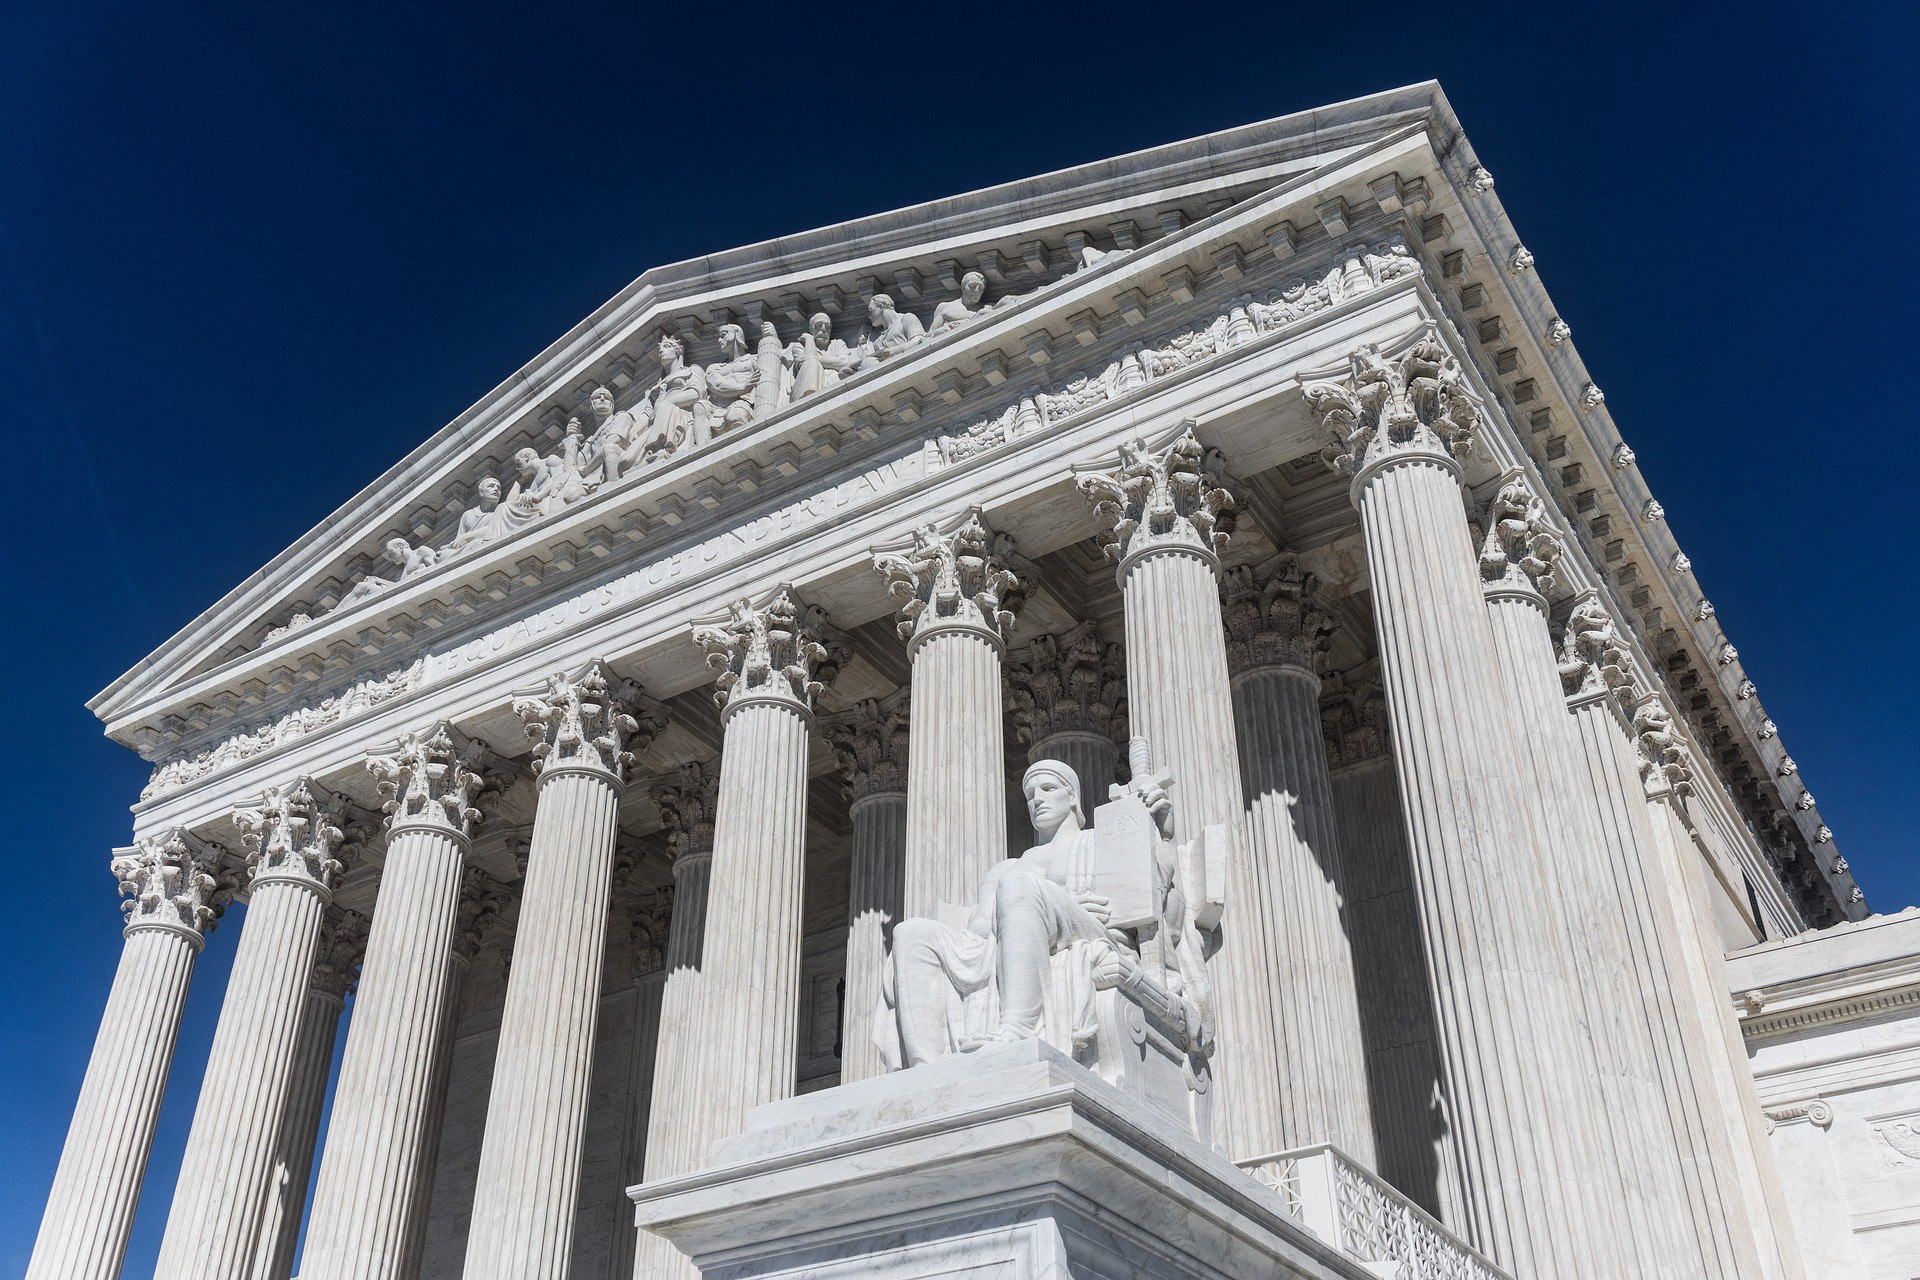 The United States Supreme Court building is photographed from below, showcasing its Greek architecture.